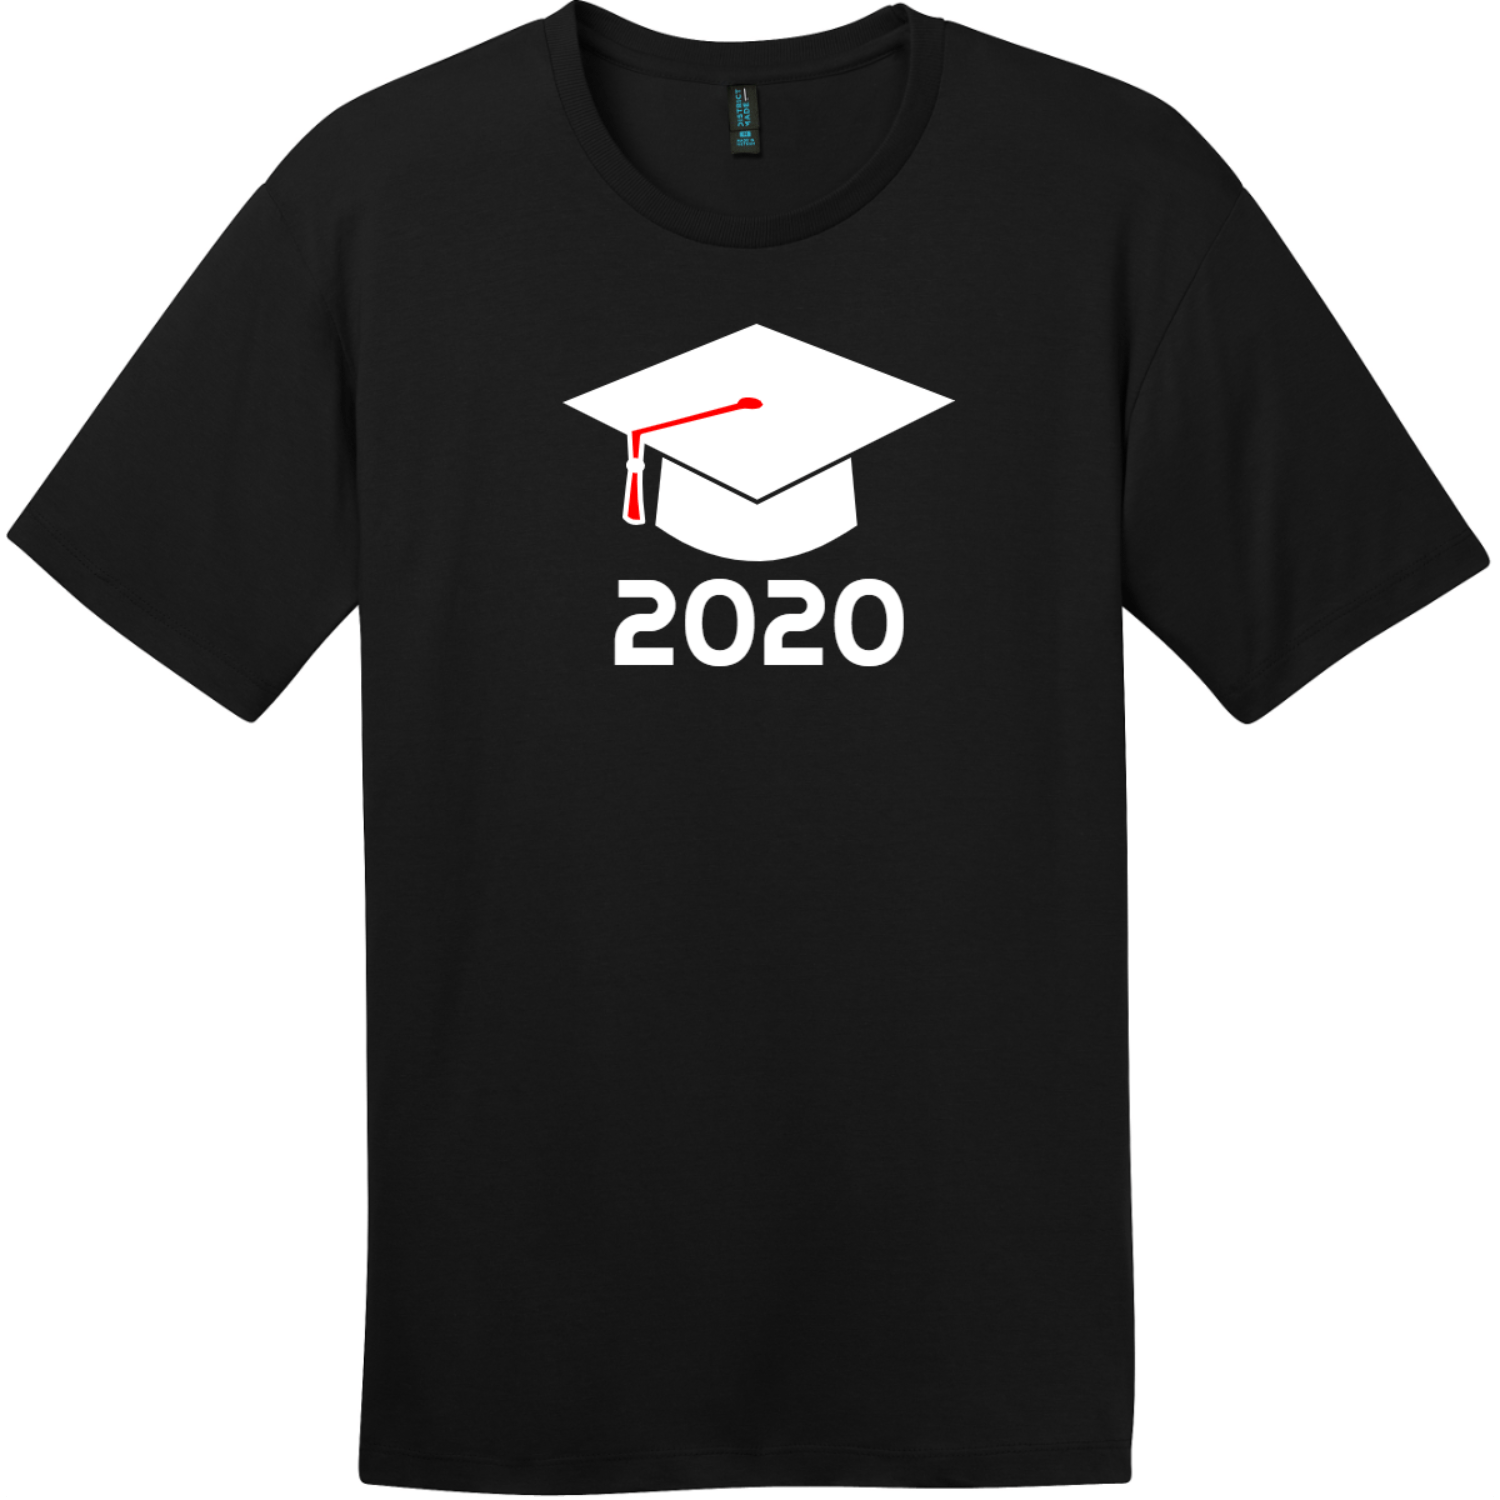 Class of 2020 T-Shirt Jet Black District Perfect Weight Tee DT104